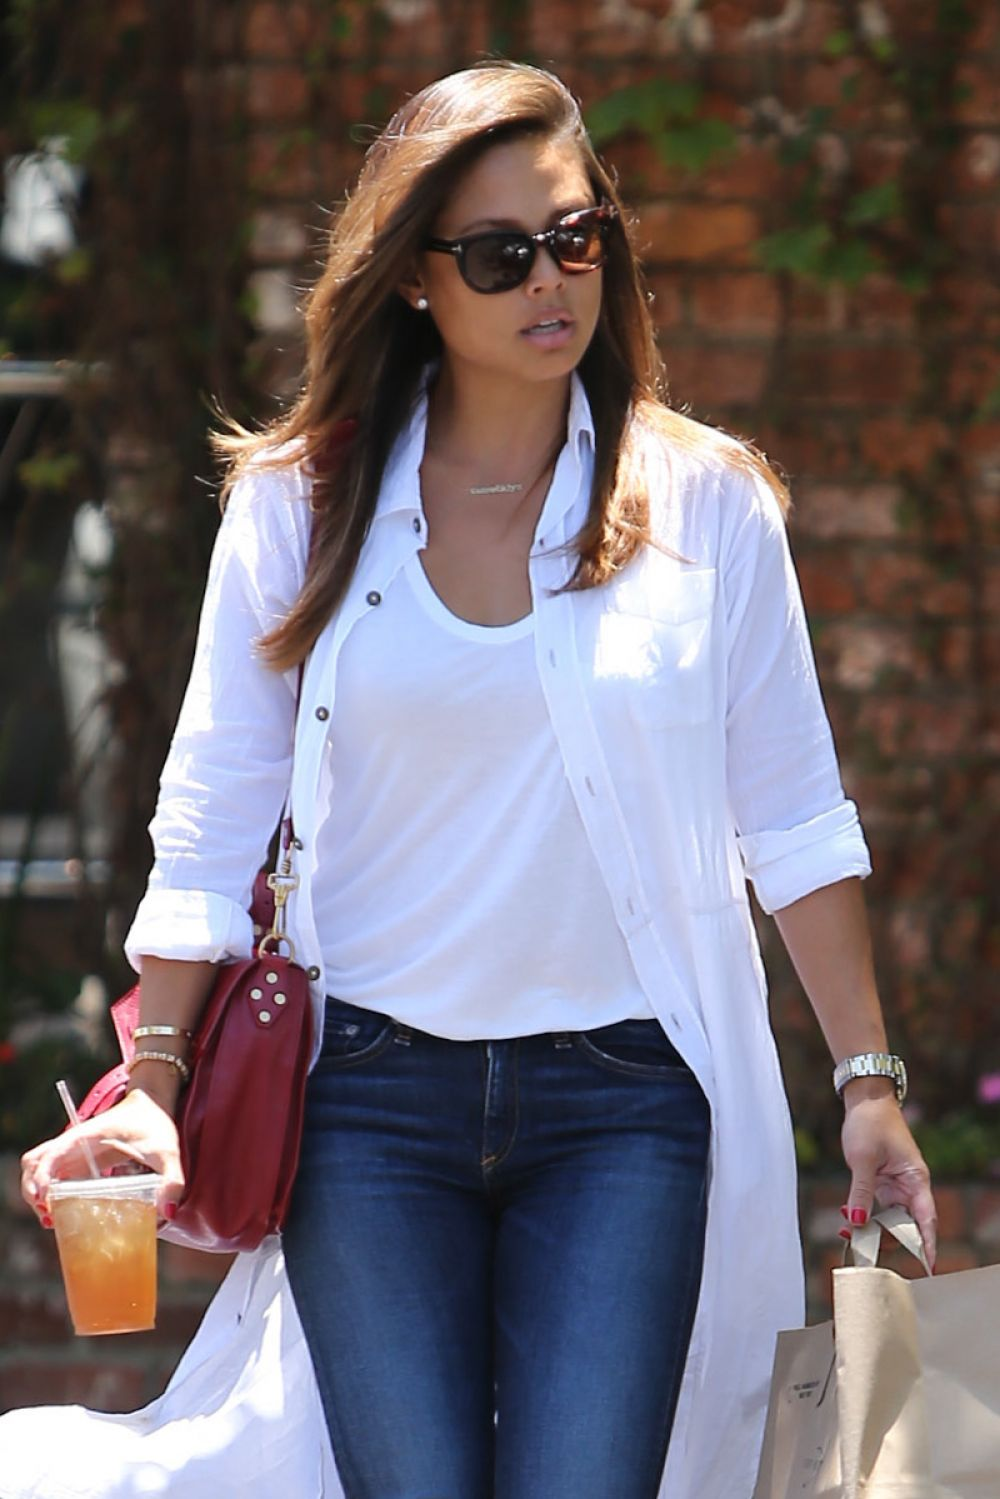 VANESSA LACHEY in Tight Jeans Out in West Hollywood 07/11/2015